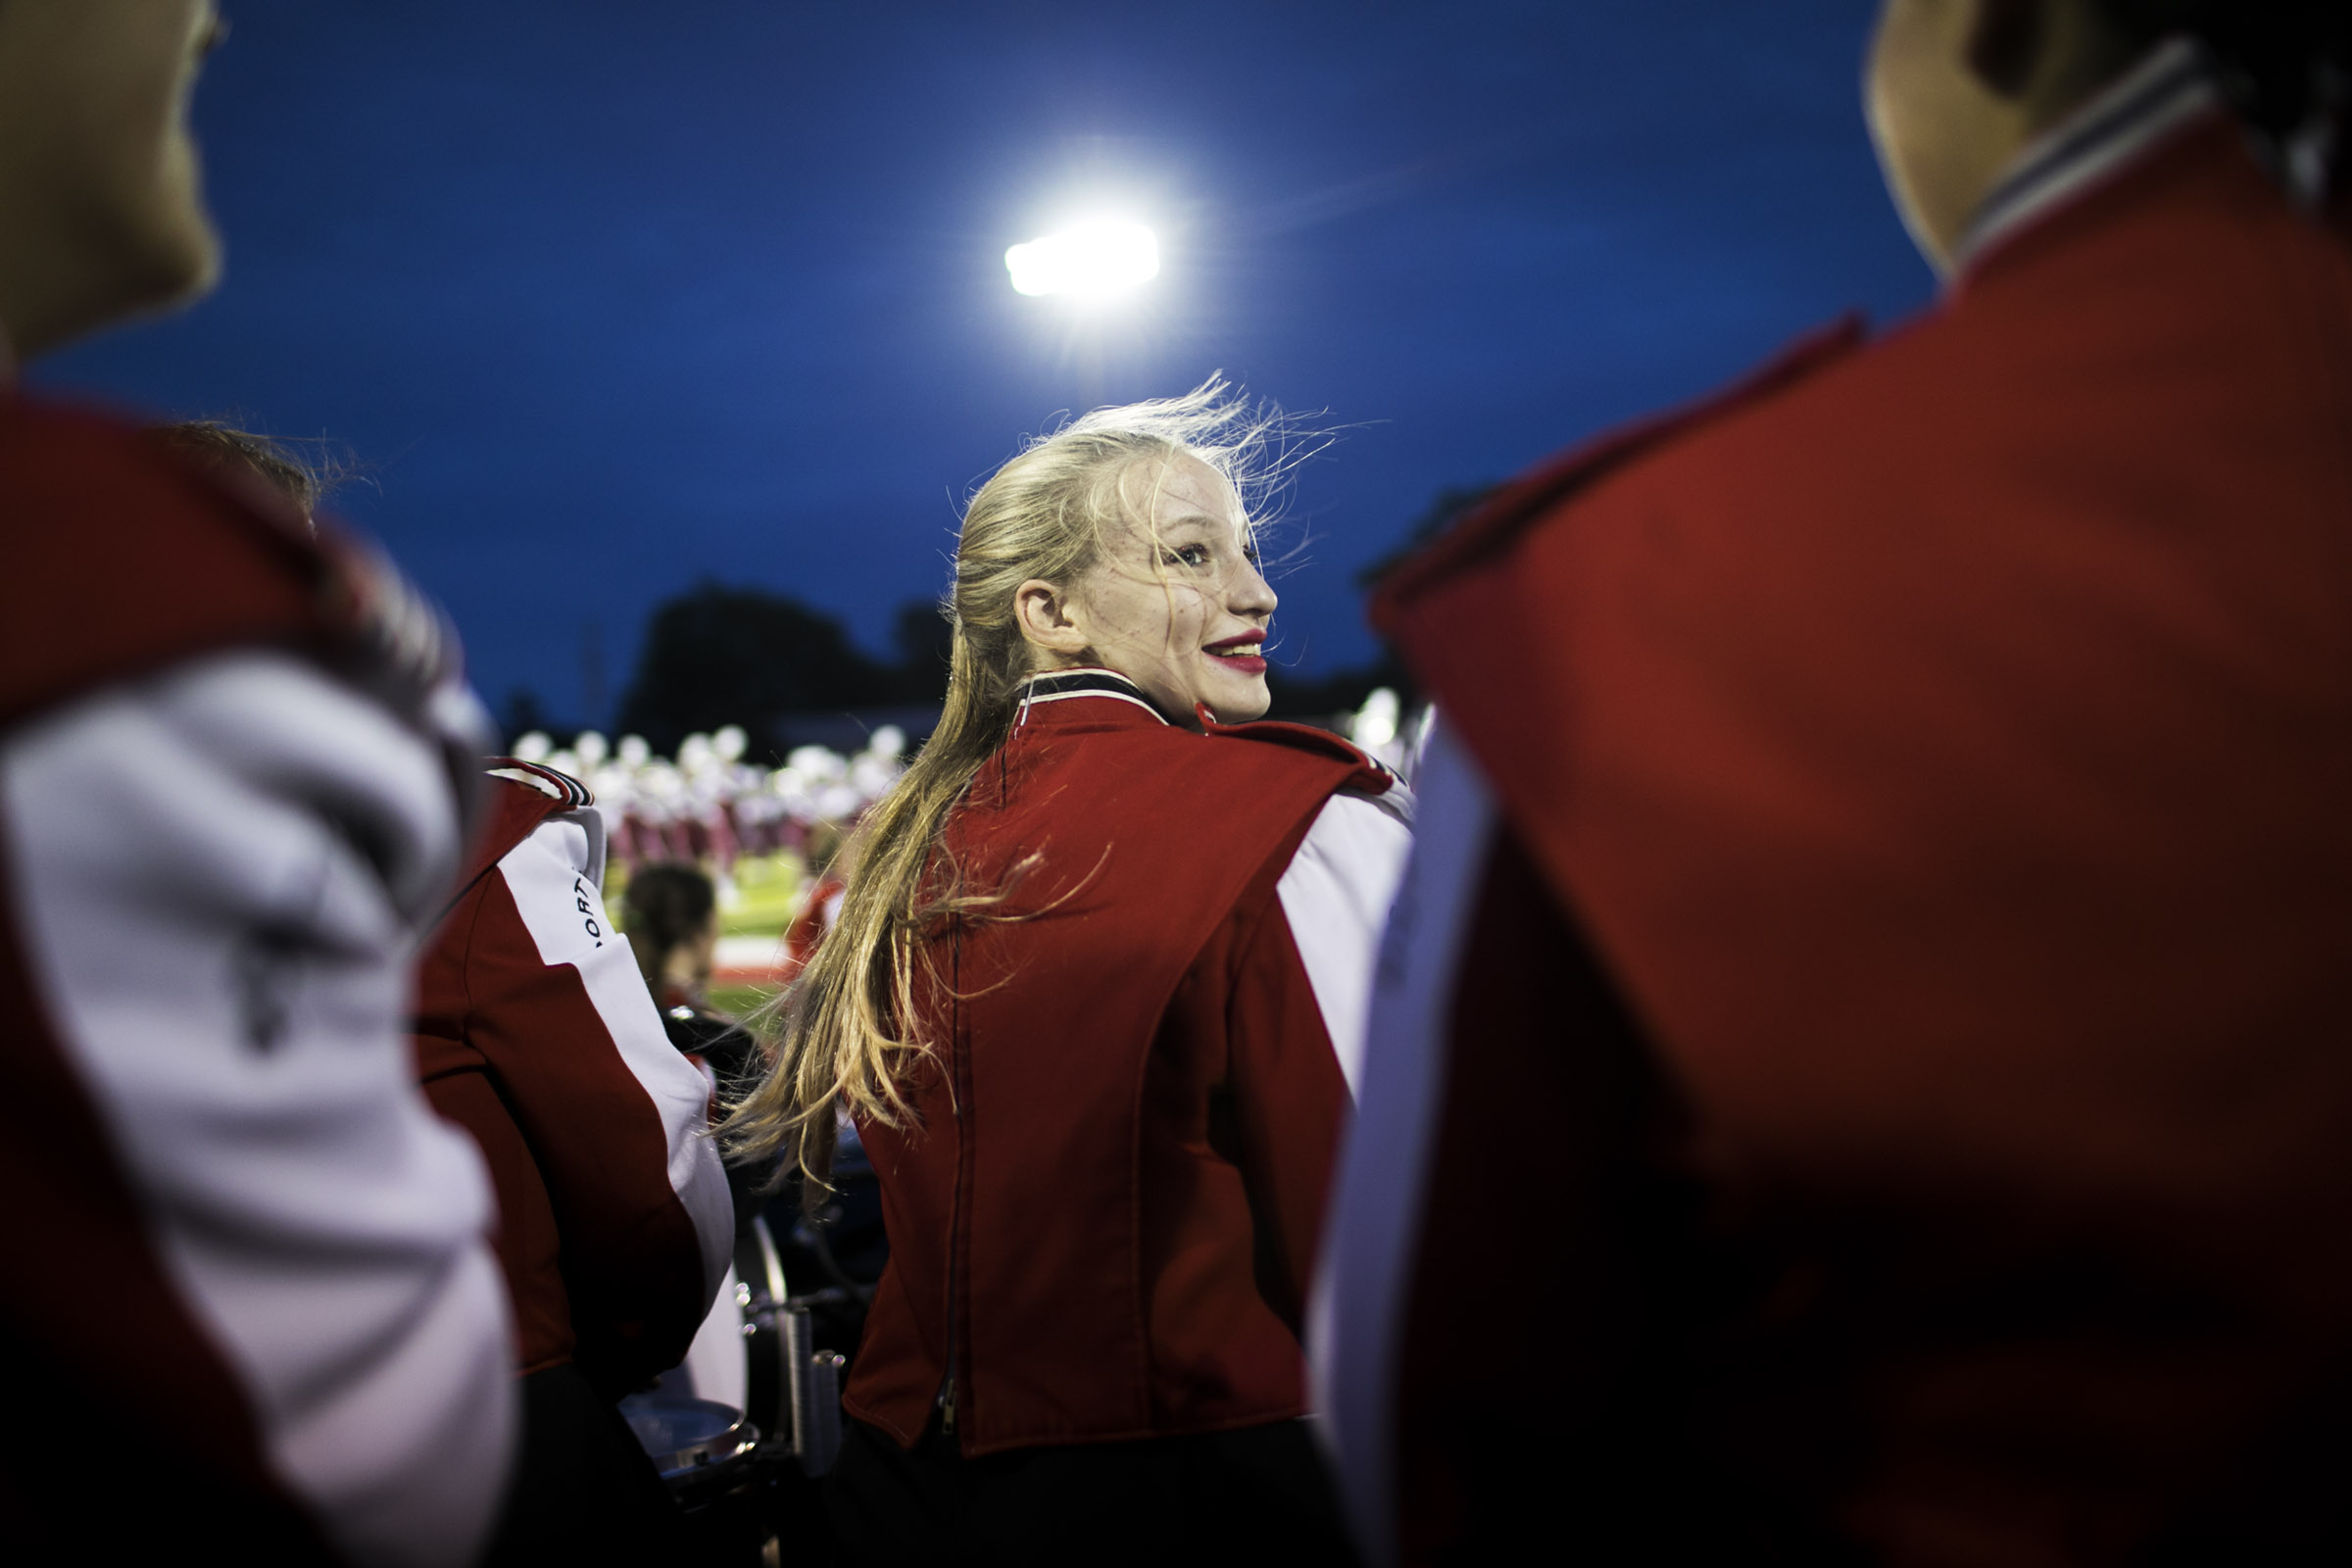 Sonya Casto joined the Port Clinton, OH Marching Band. (Photo by Maddie McGarvey)